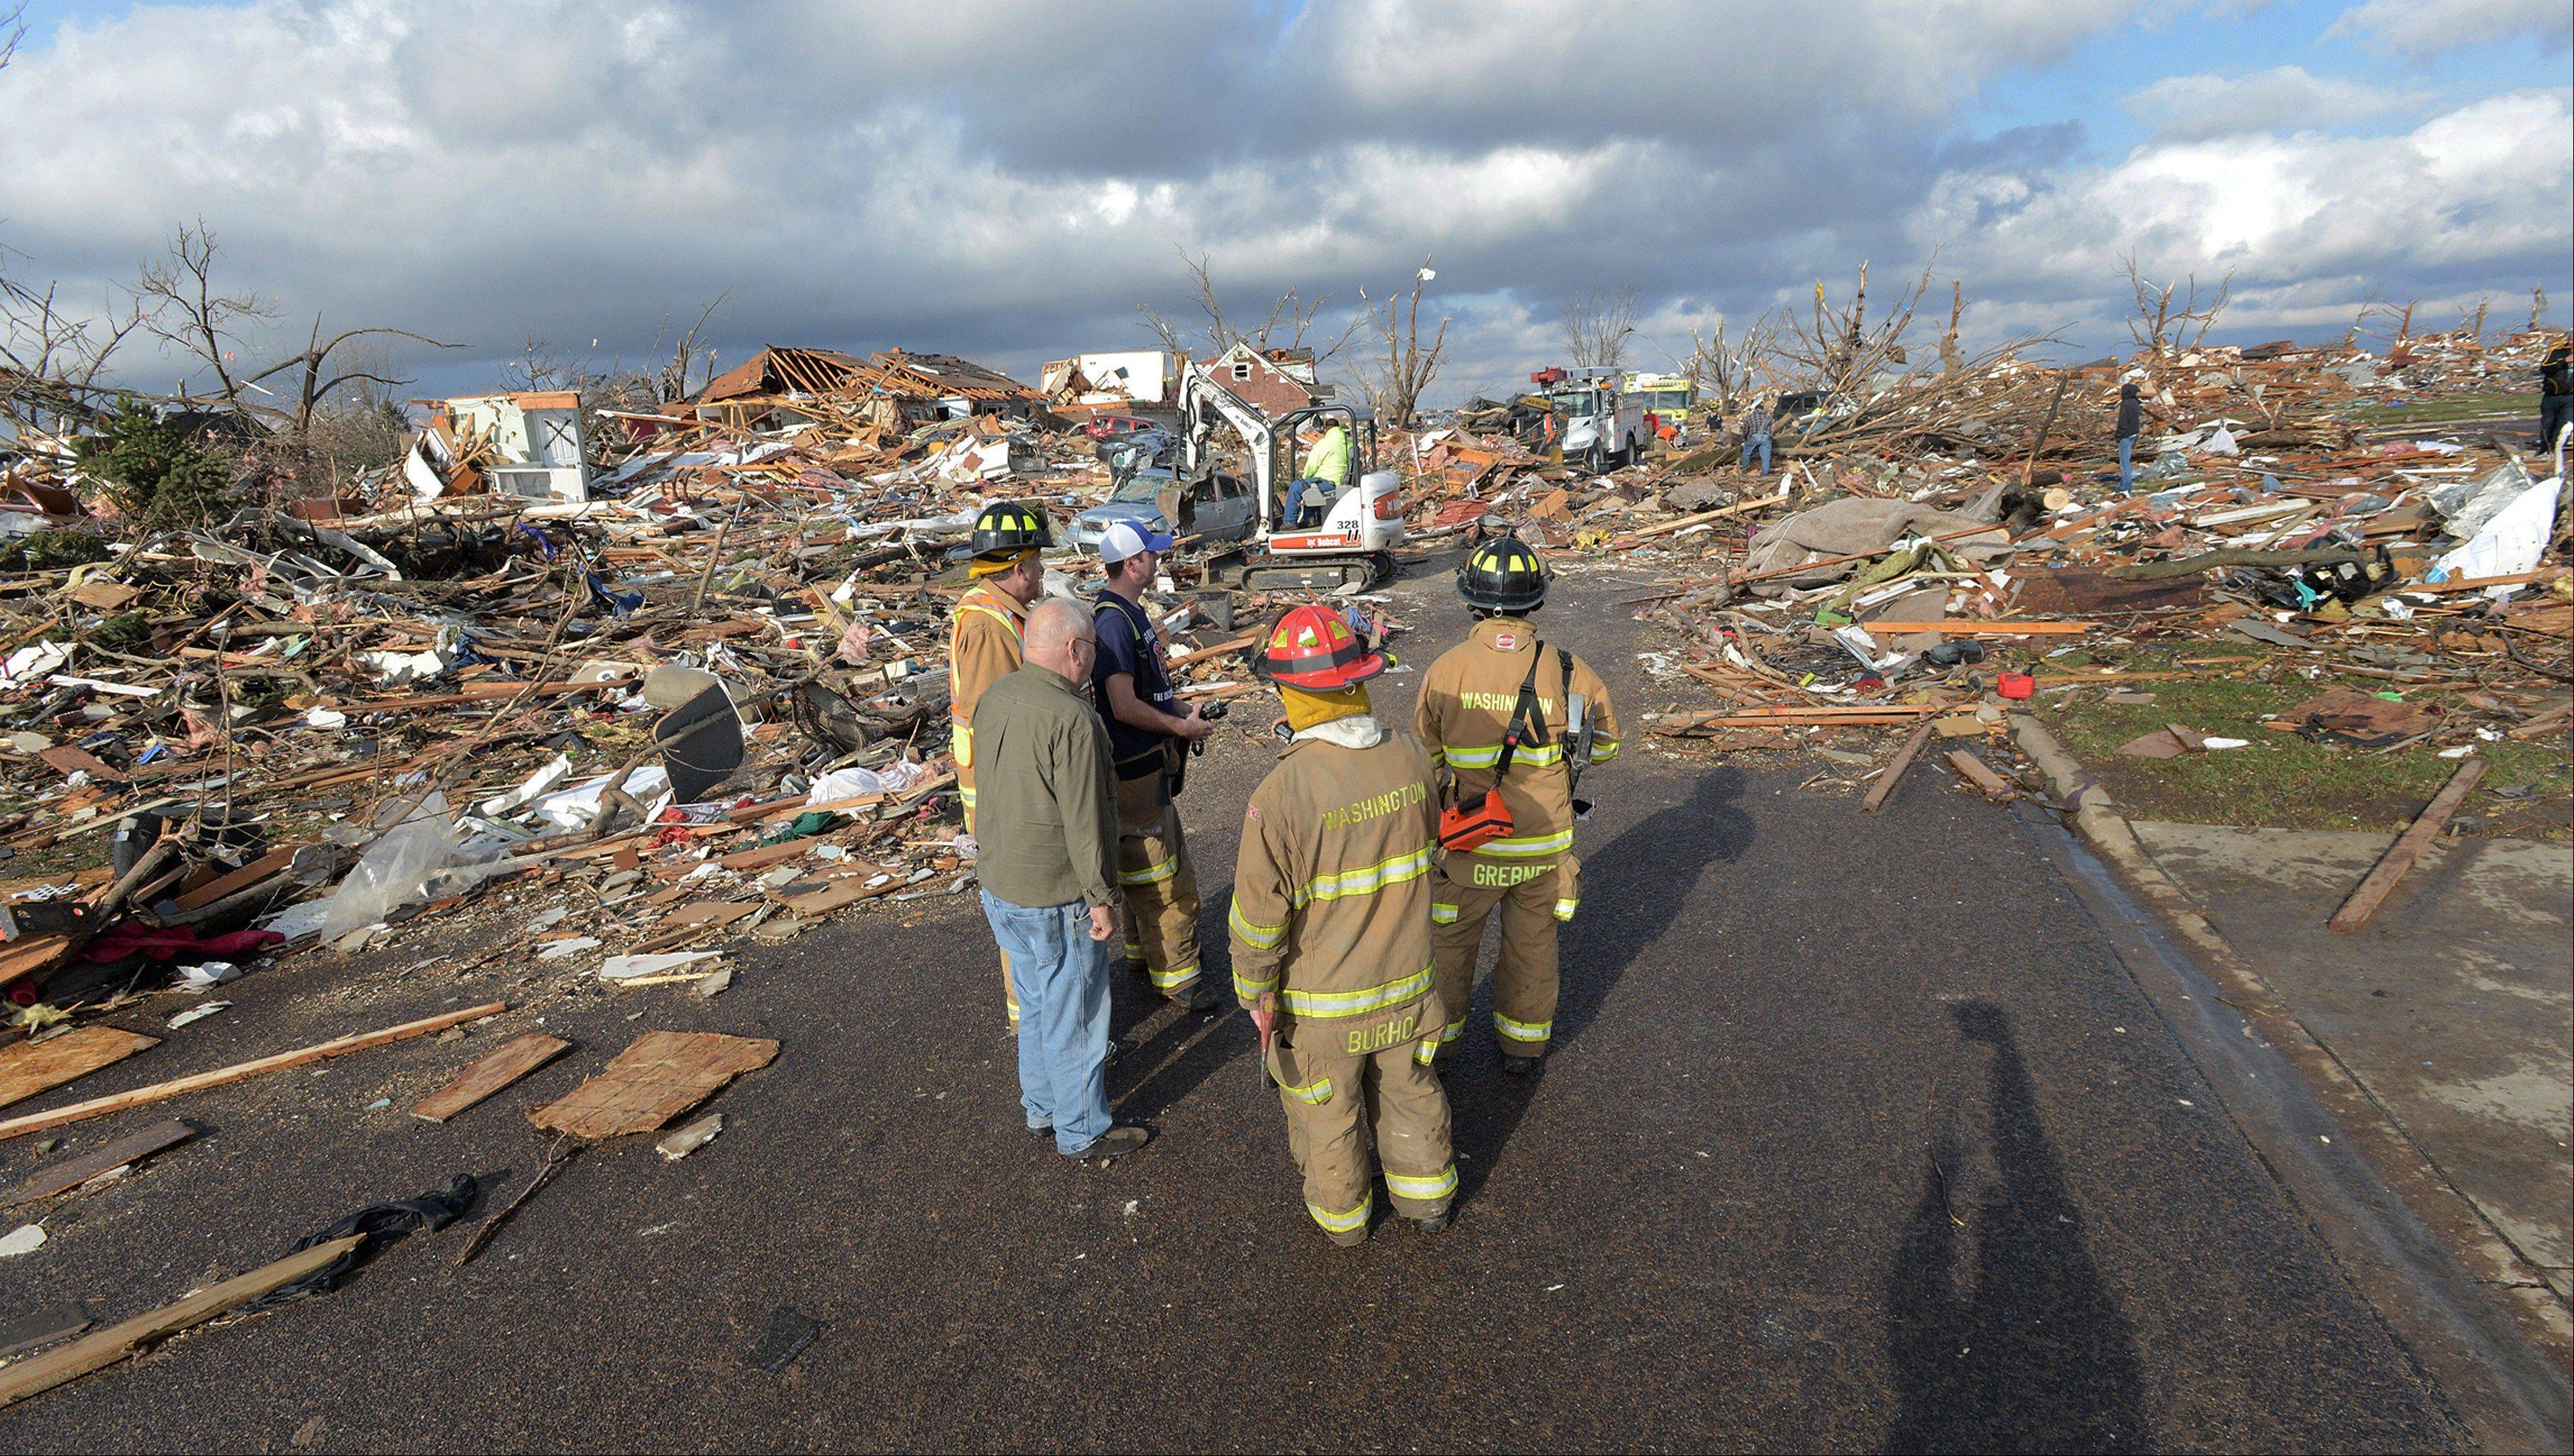 Washington, Ill., firefighters stand in the middle of Devonshire Street on the North side of Washington, Ill., after a tornado leveled at least fifty homes, Sunday, Nov. 17, 2013. High winds that followed the tornado are causing danger as homeowners and emergency workers try to search homes.